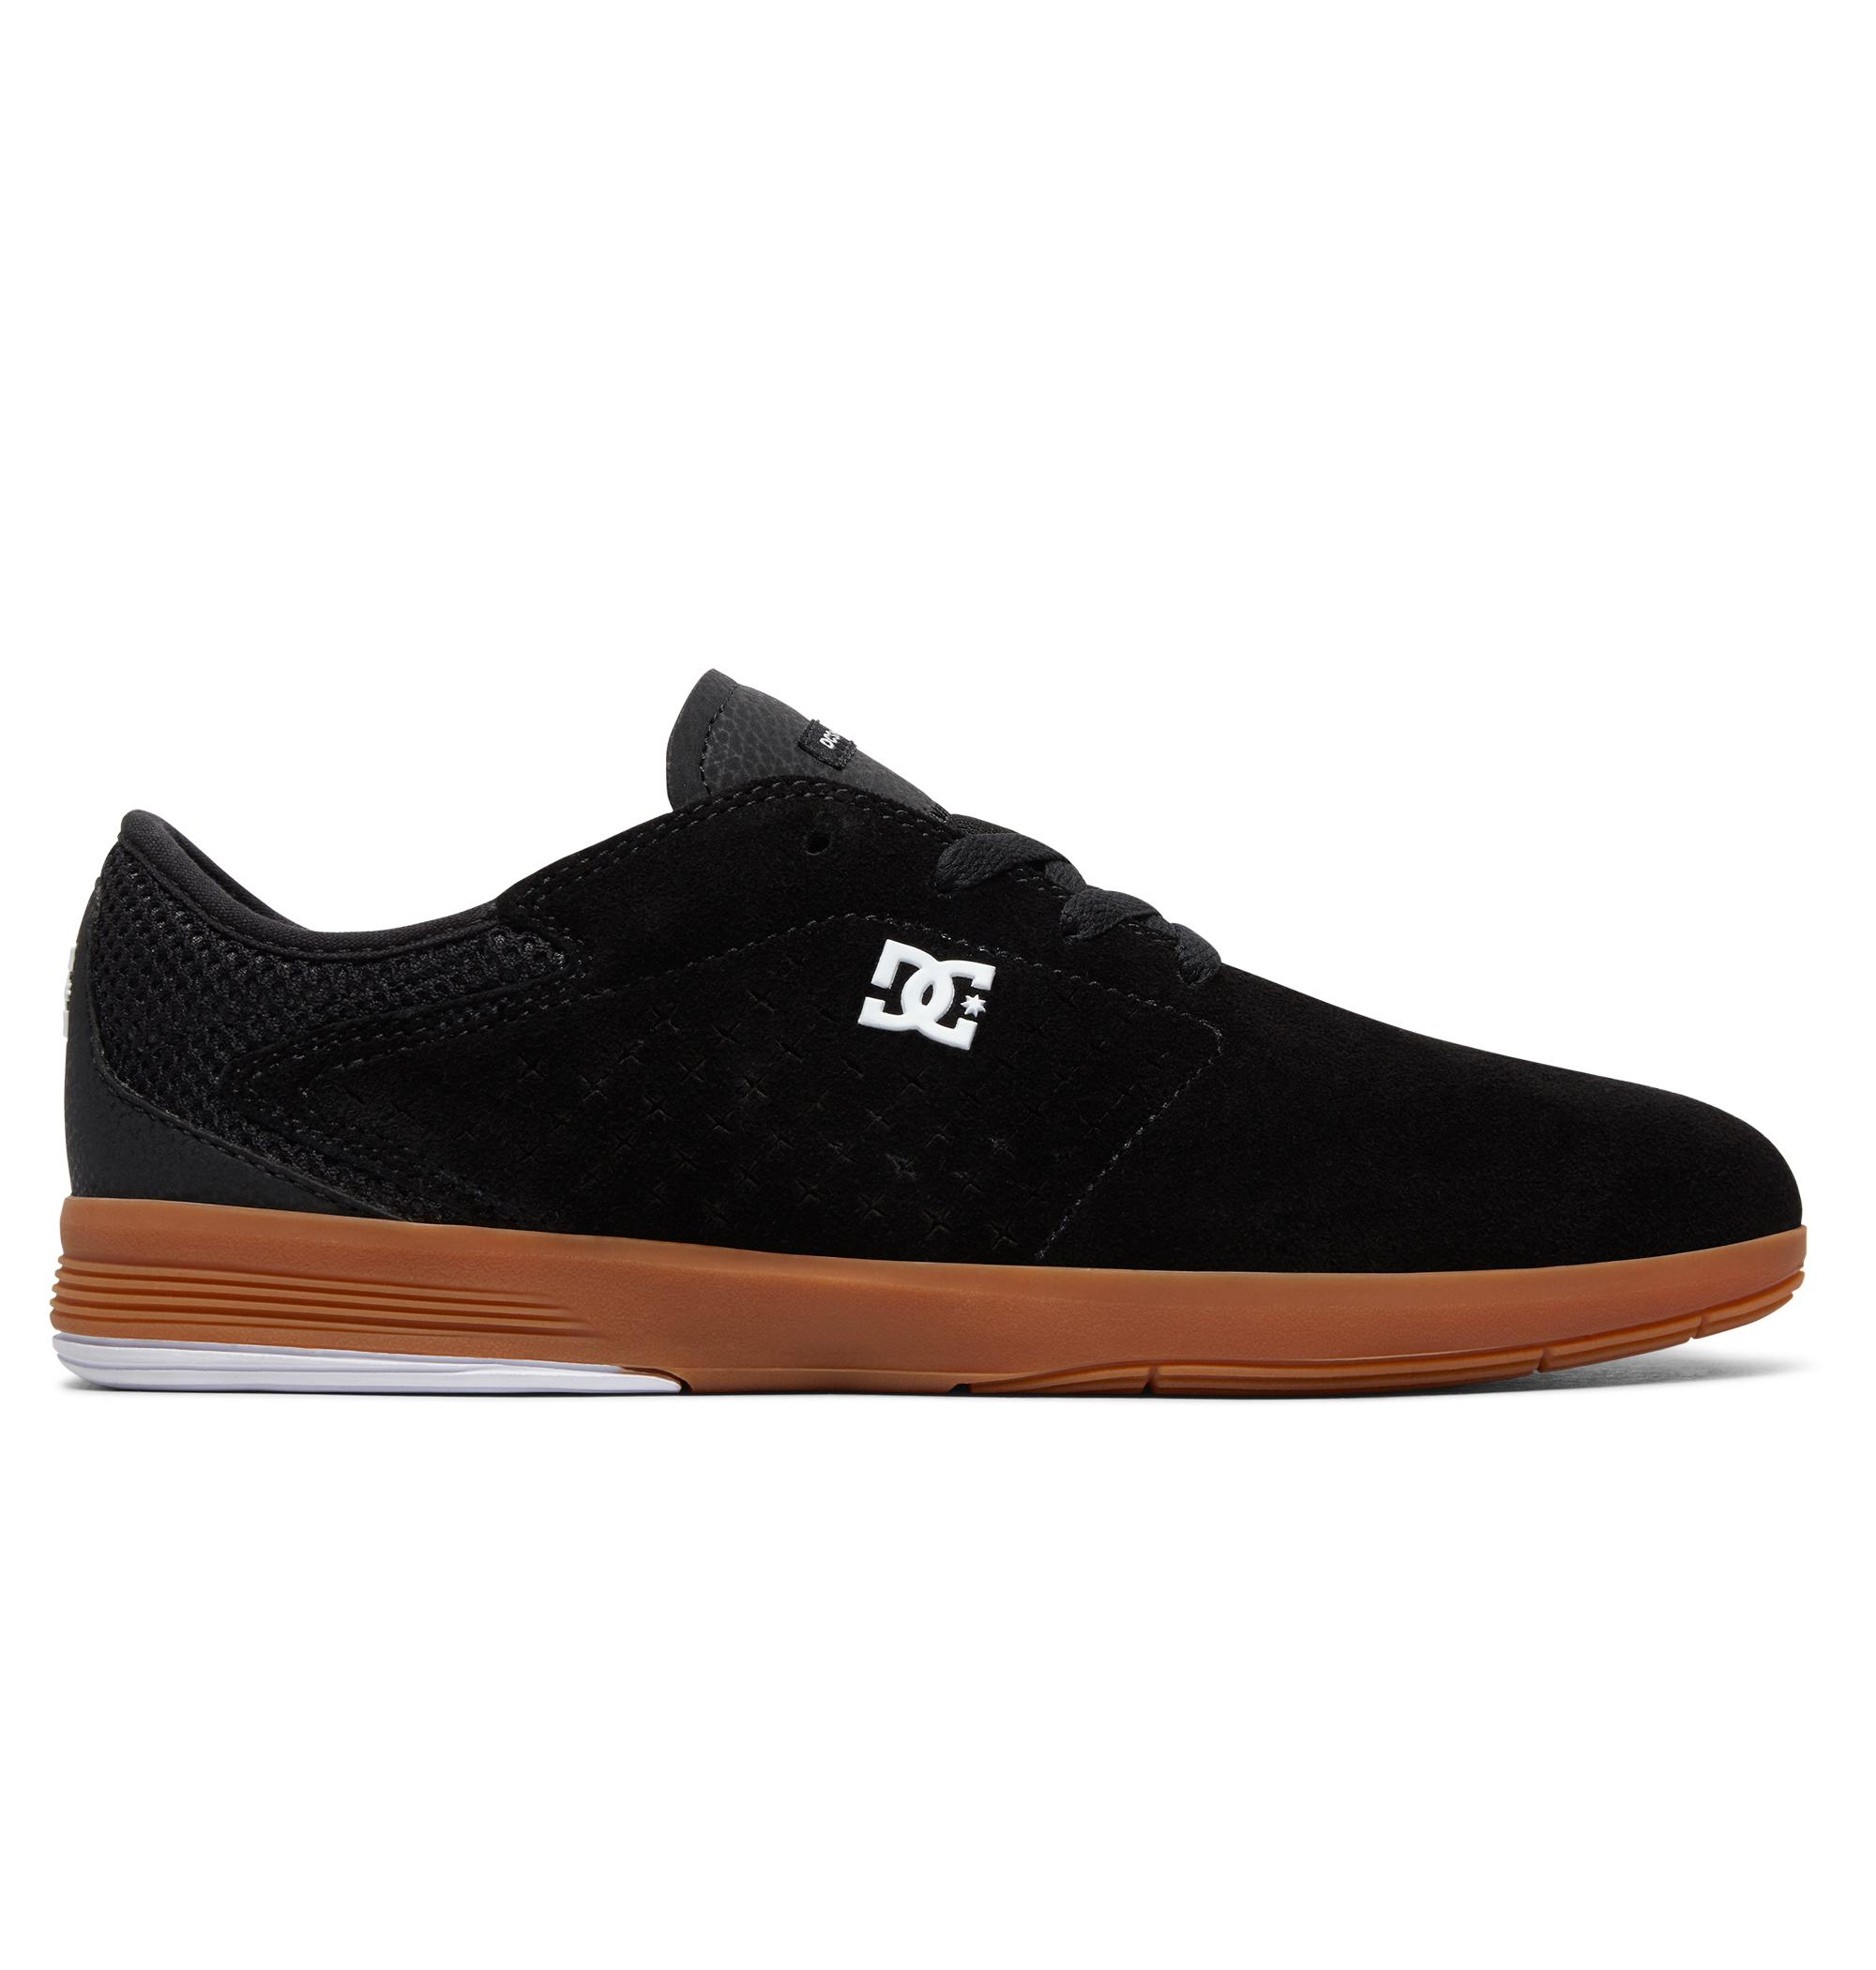 Buty Dc New Jack S (Blacl / Gum) Ss18